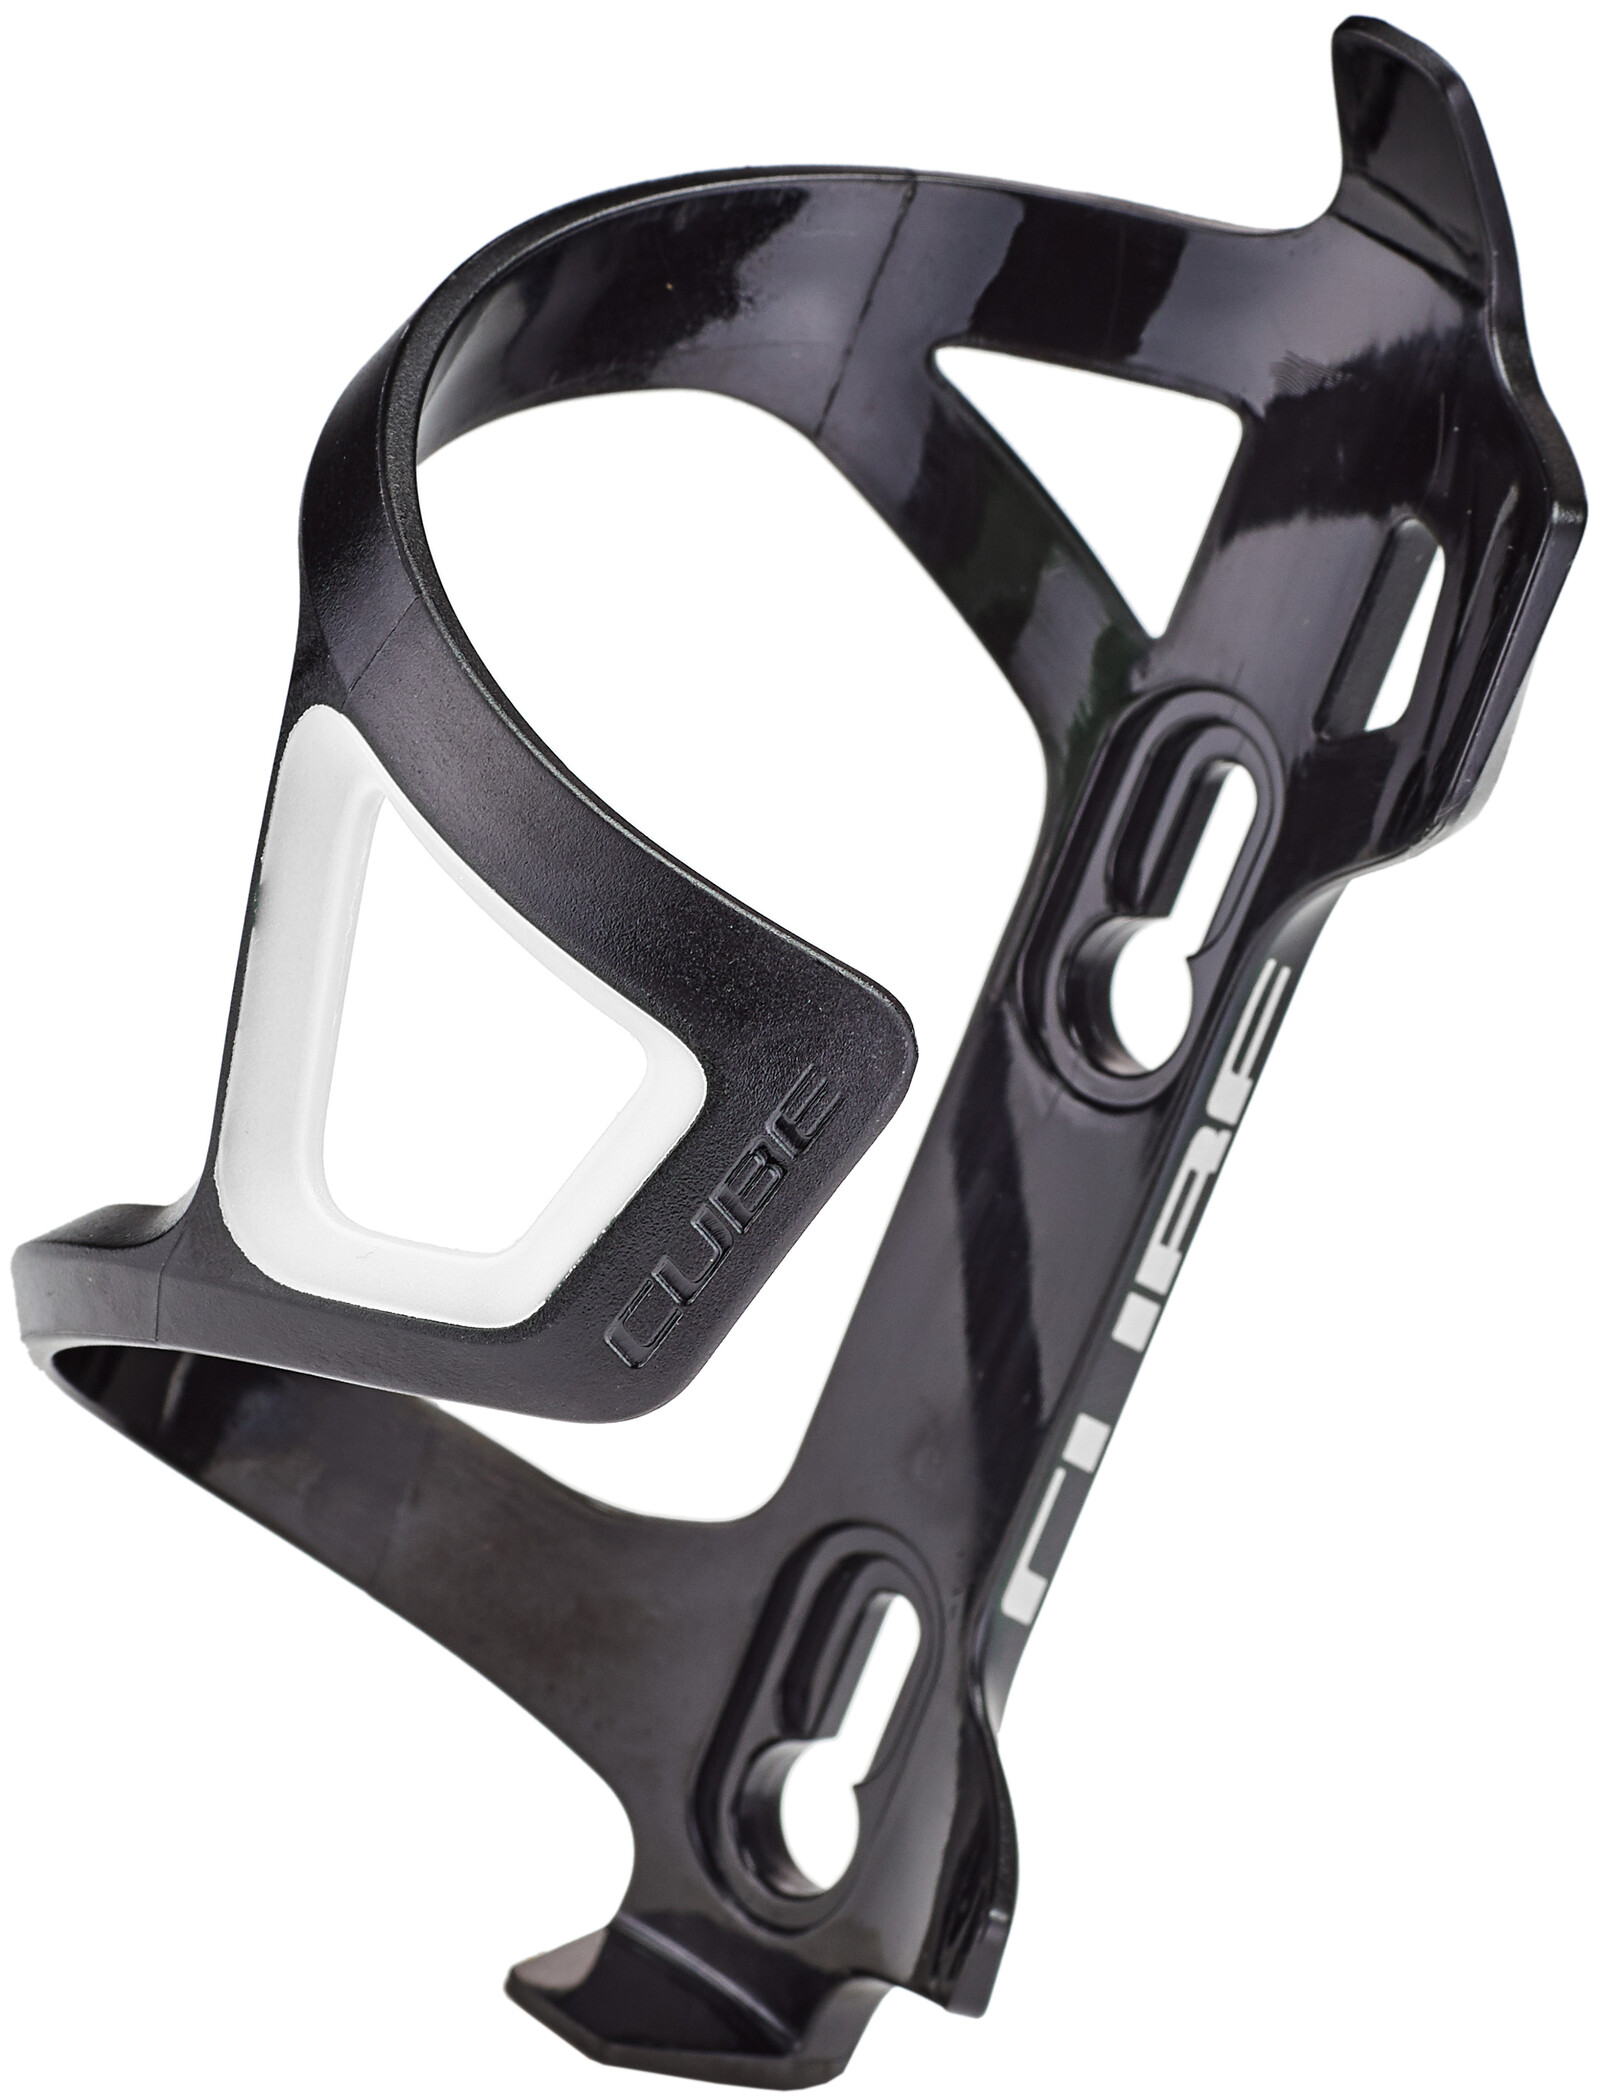 Cube HPP-Sidecage Flaskeholder, black/white (2020) | Bottle cages